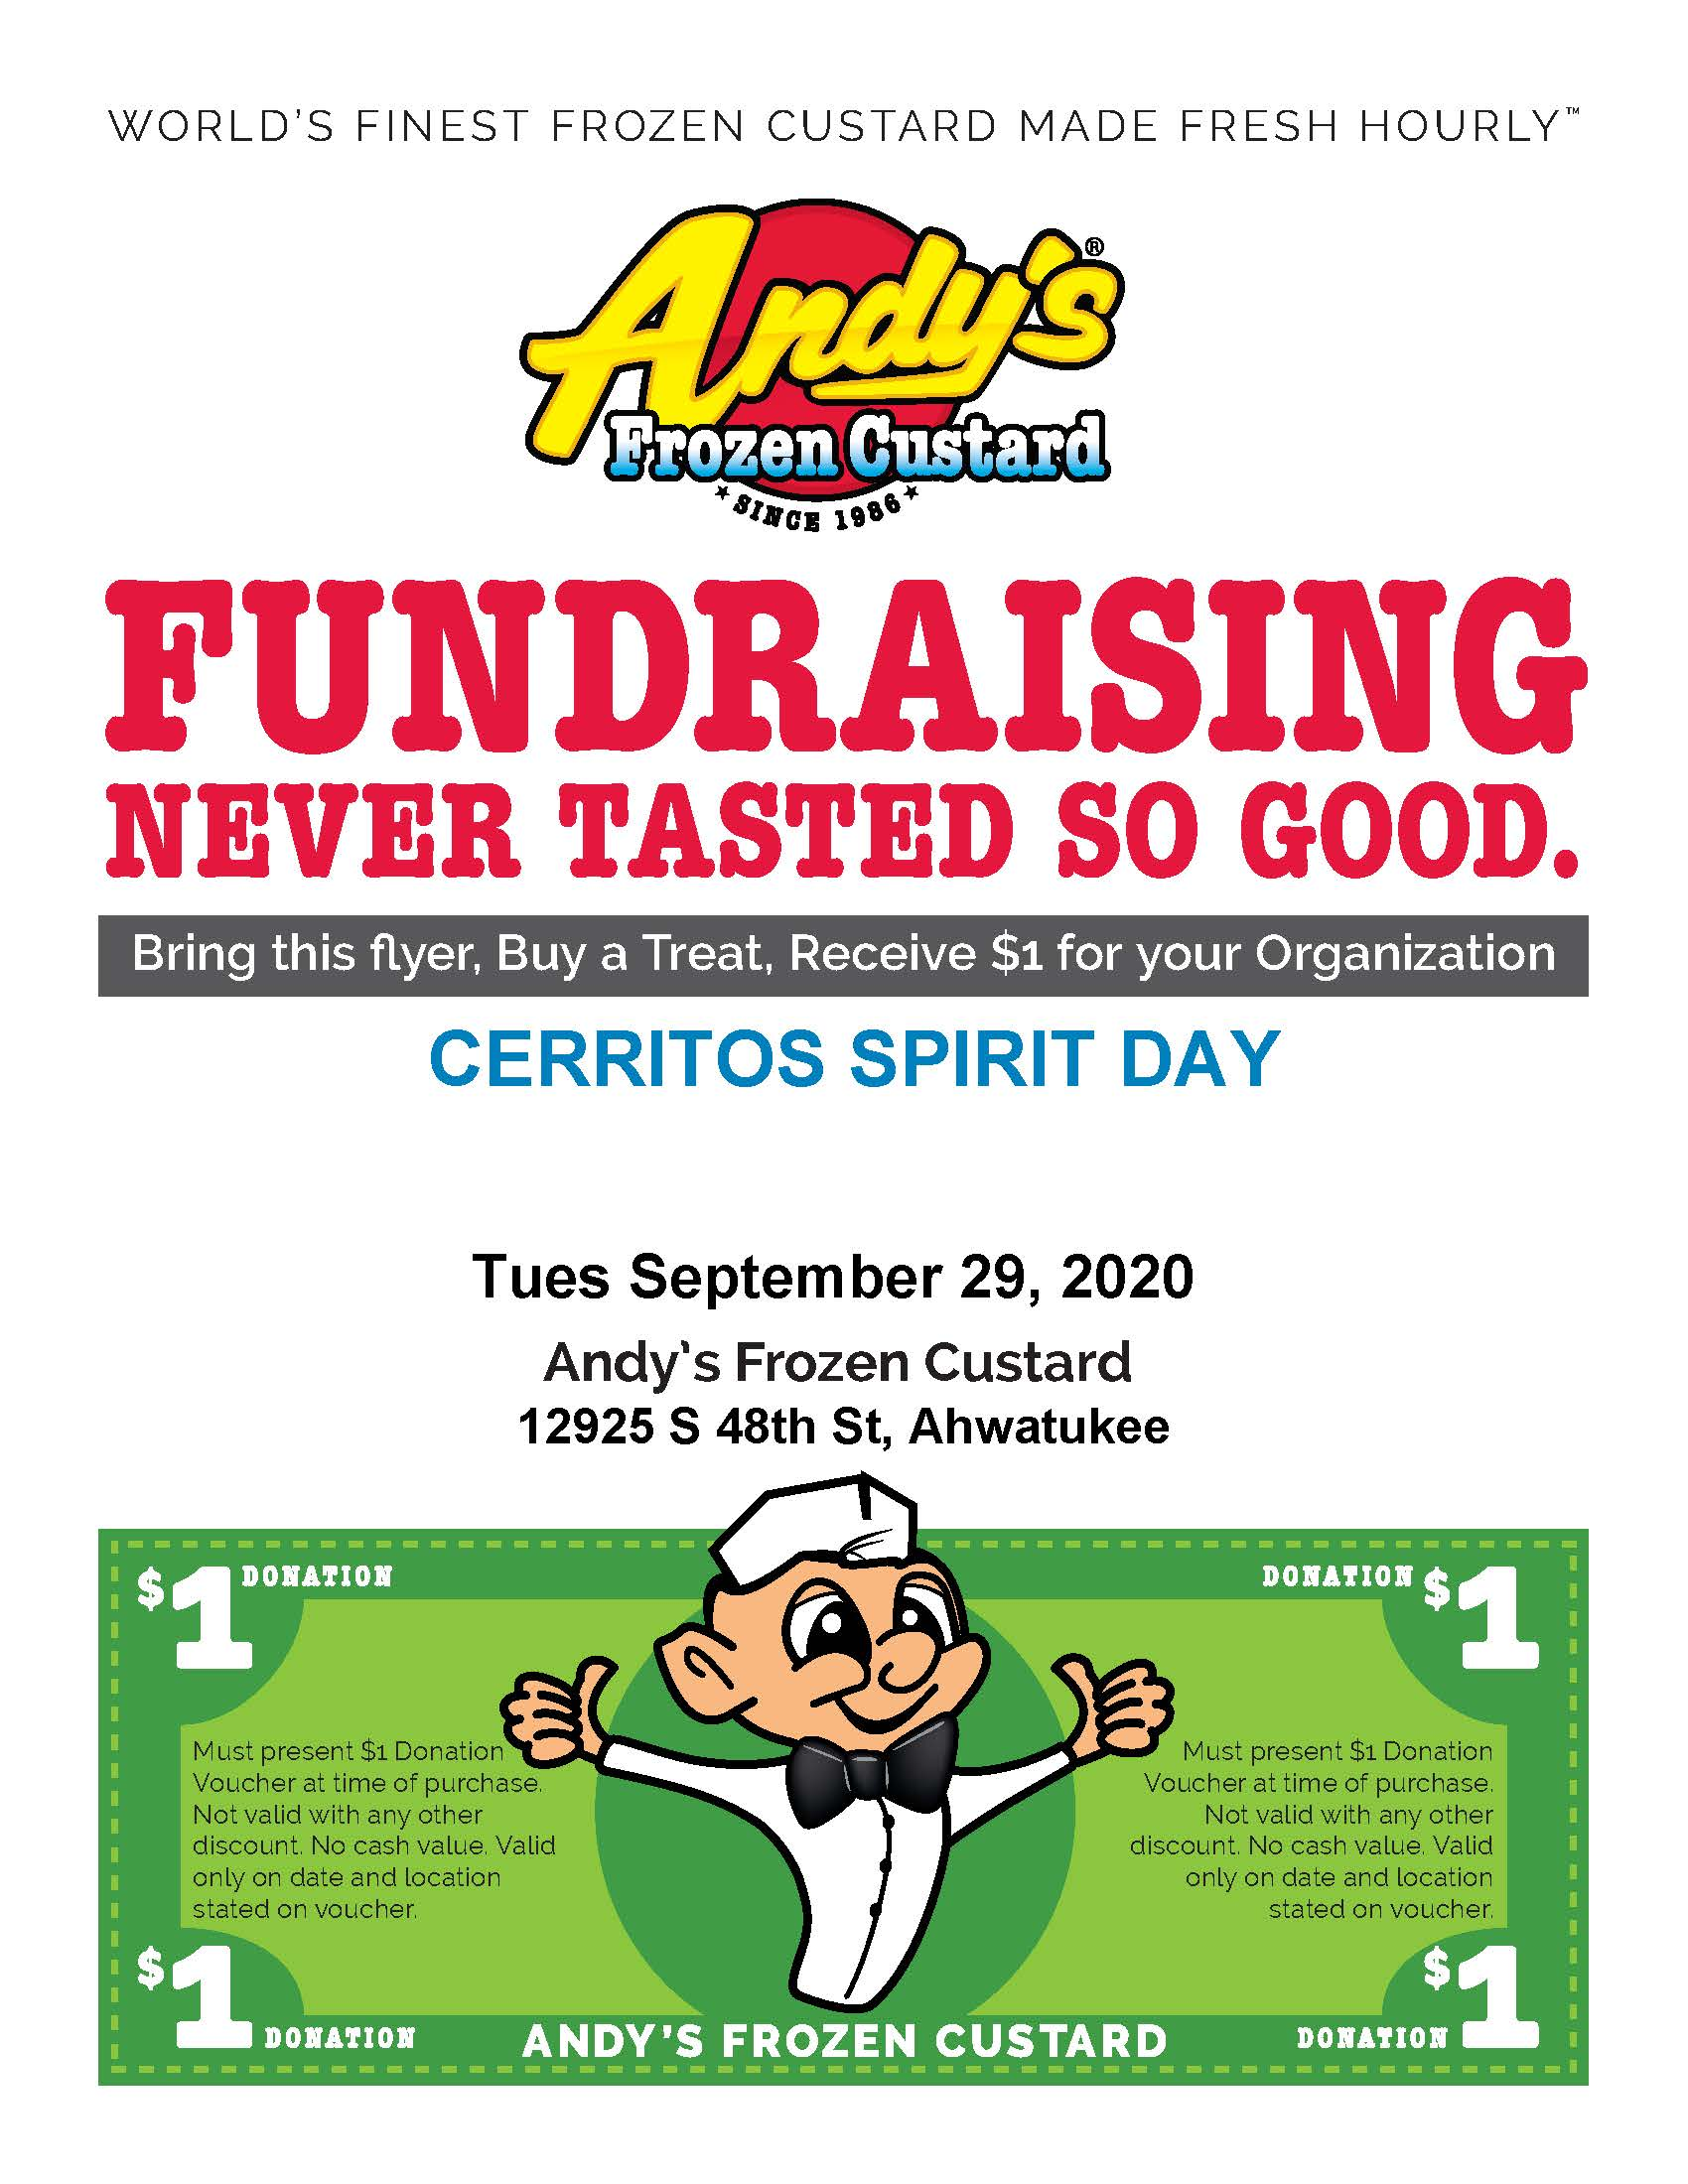 Andy's Frozen Custard Spirit Day - Takeout Tuesday Fundraiser @ Andy's Frozen Custard | Phoenix | Arizona | United States